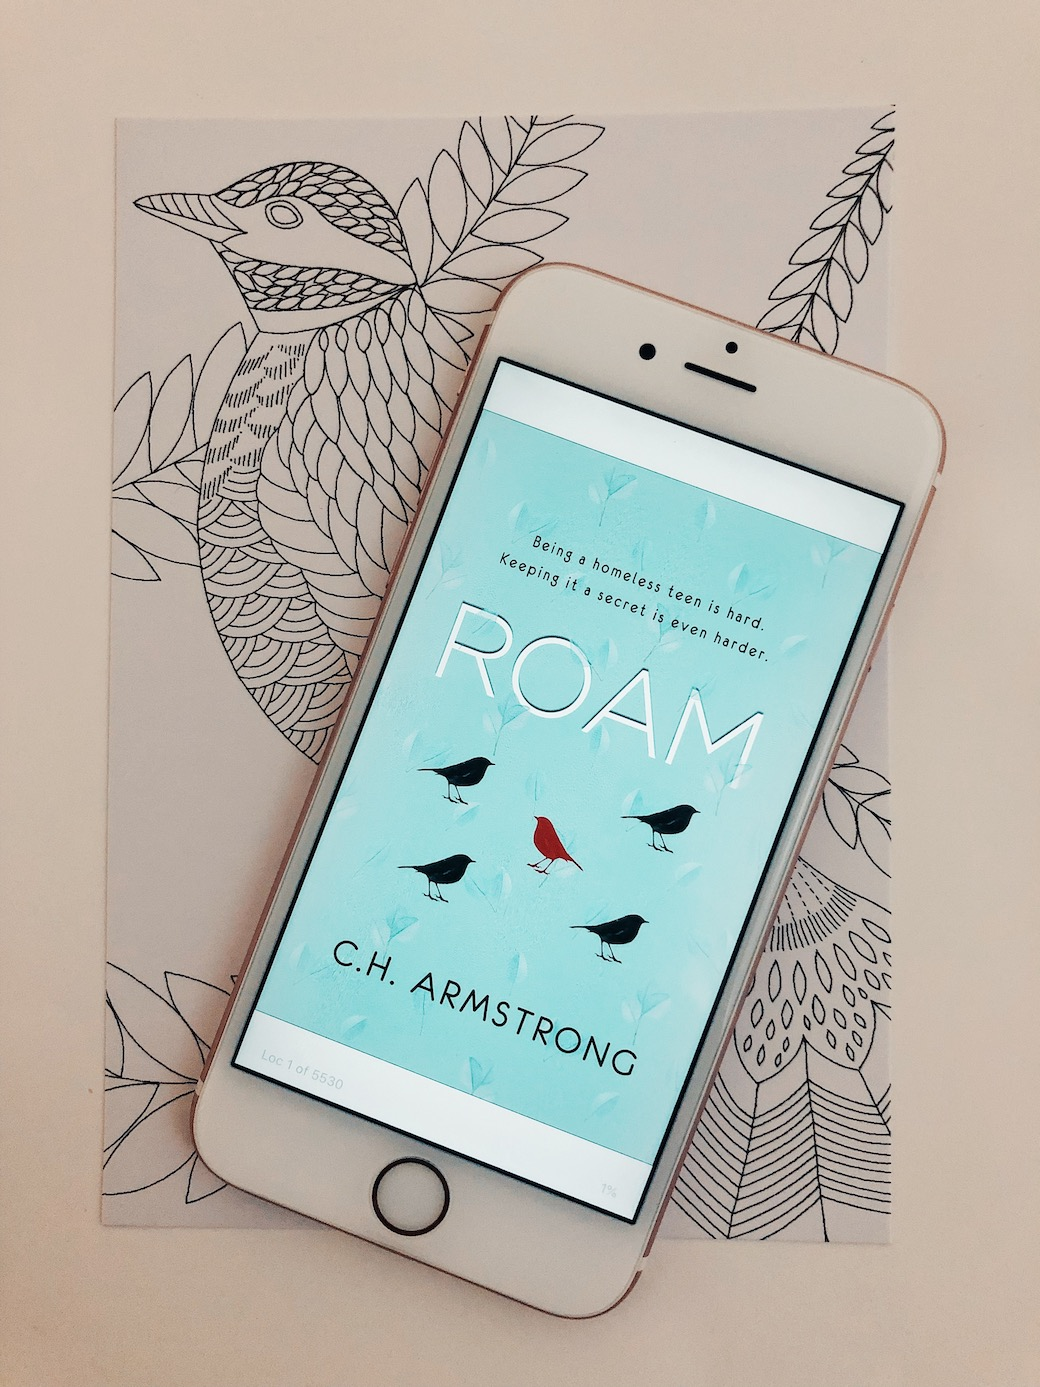 Roam-CH-Armstrong-ARC-Review-netgalley-the-wednesday-issue